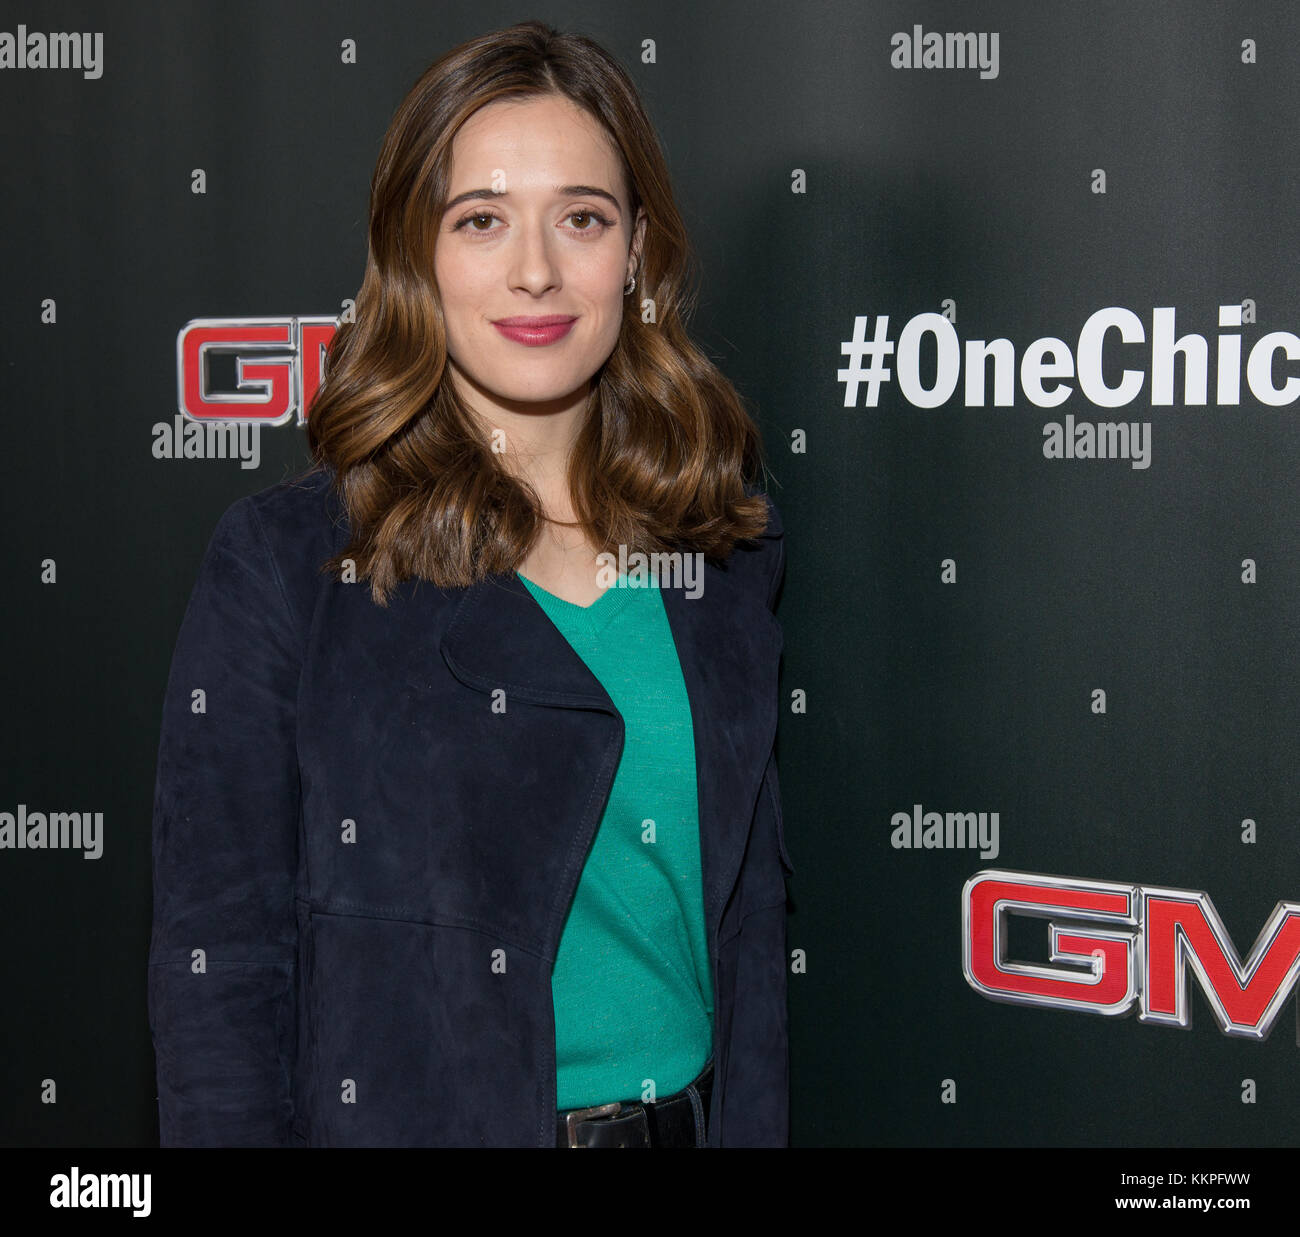 Arrivals For The 3rd Annual Chicago Press Day Featuring Cast